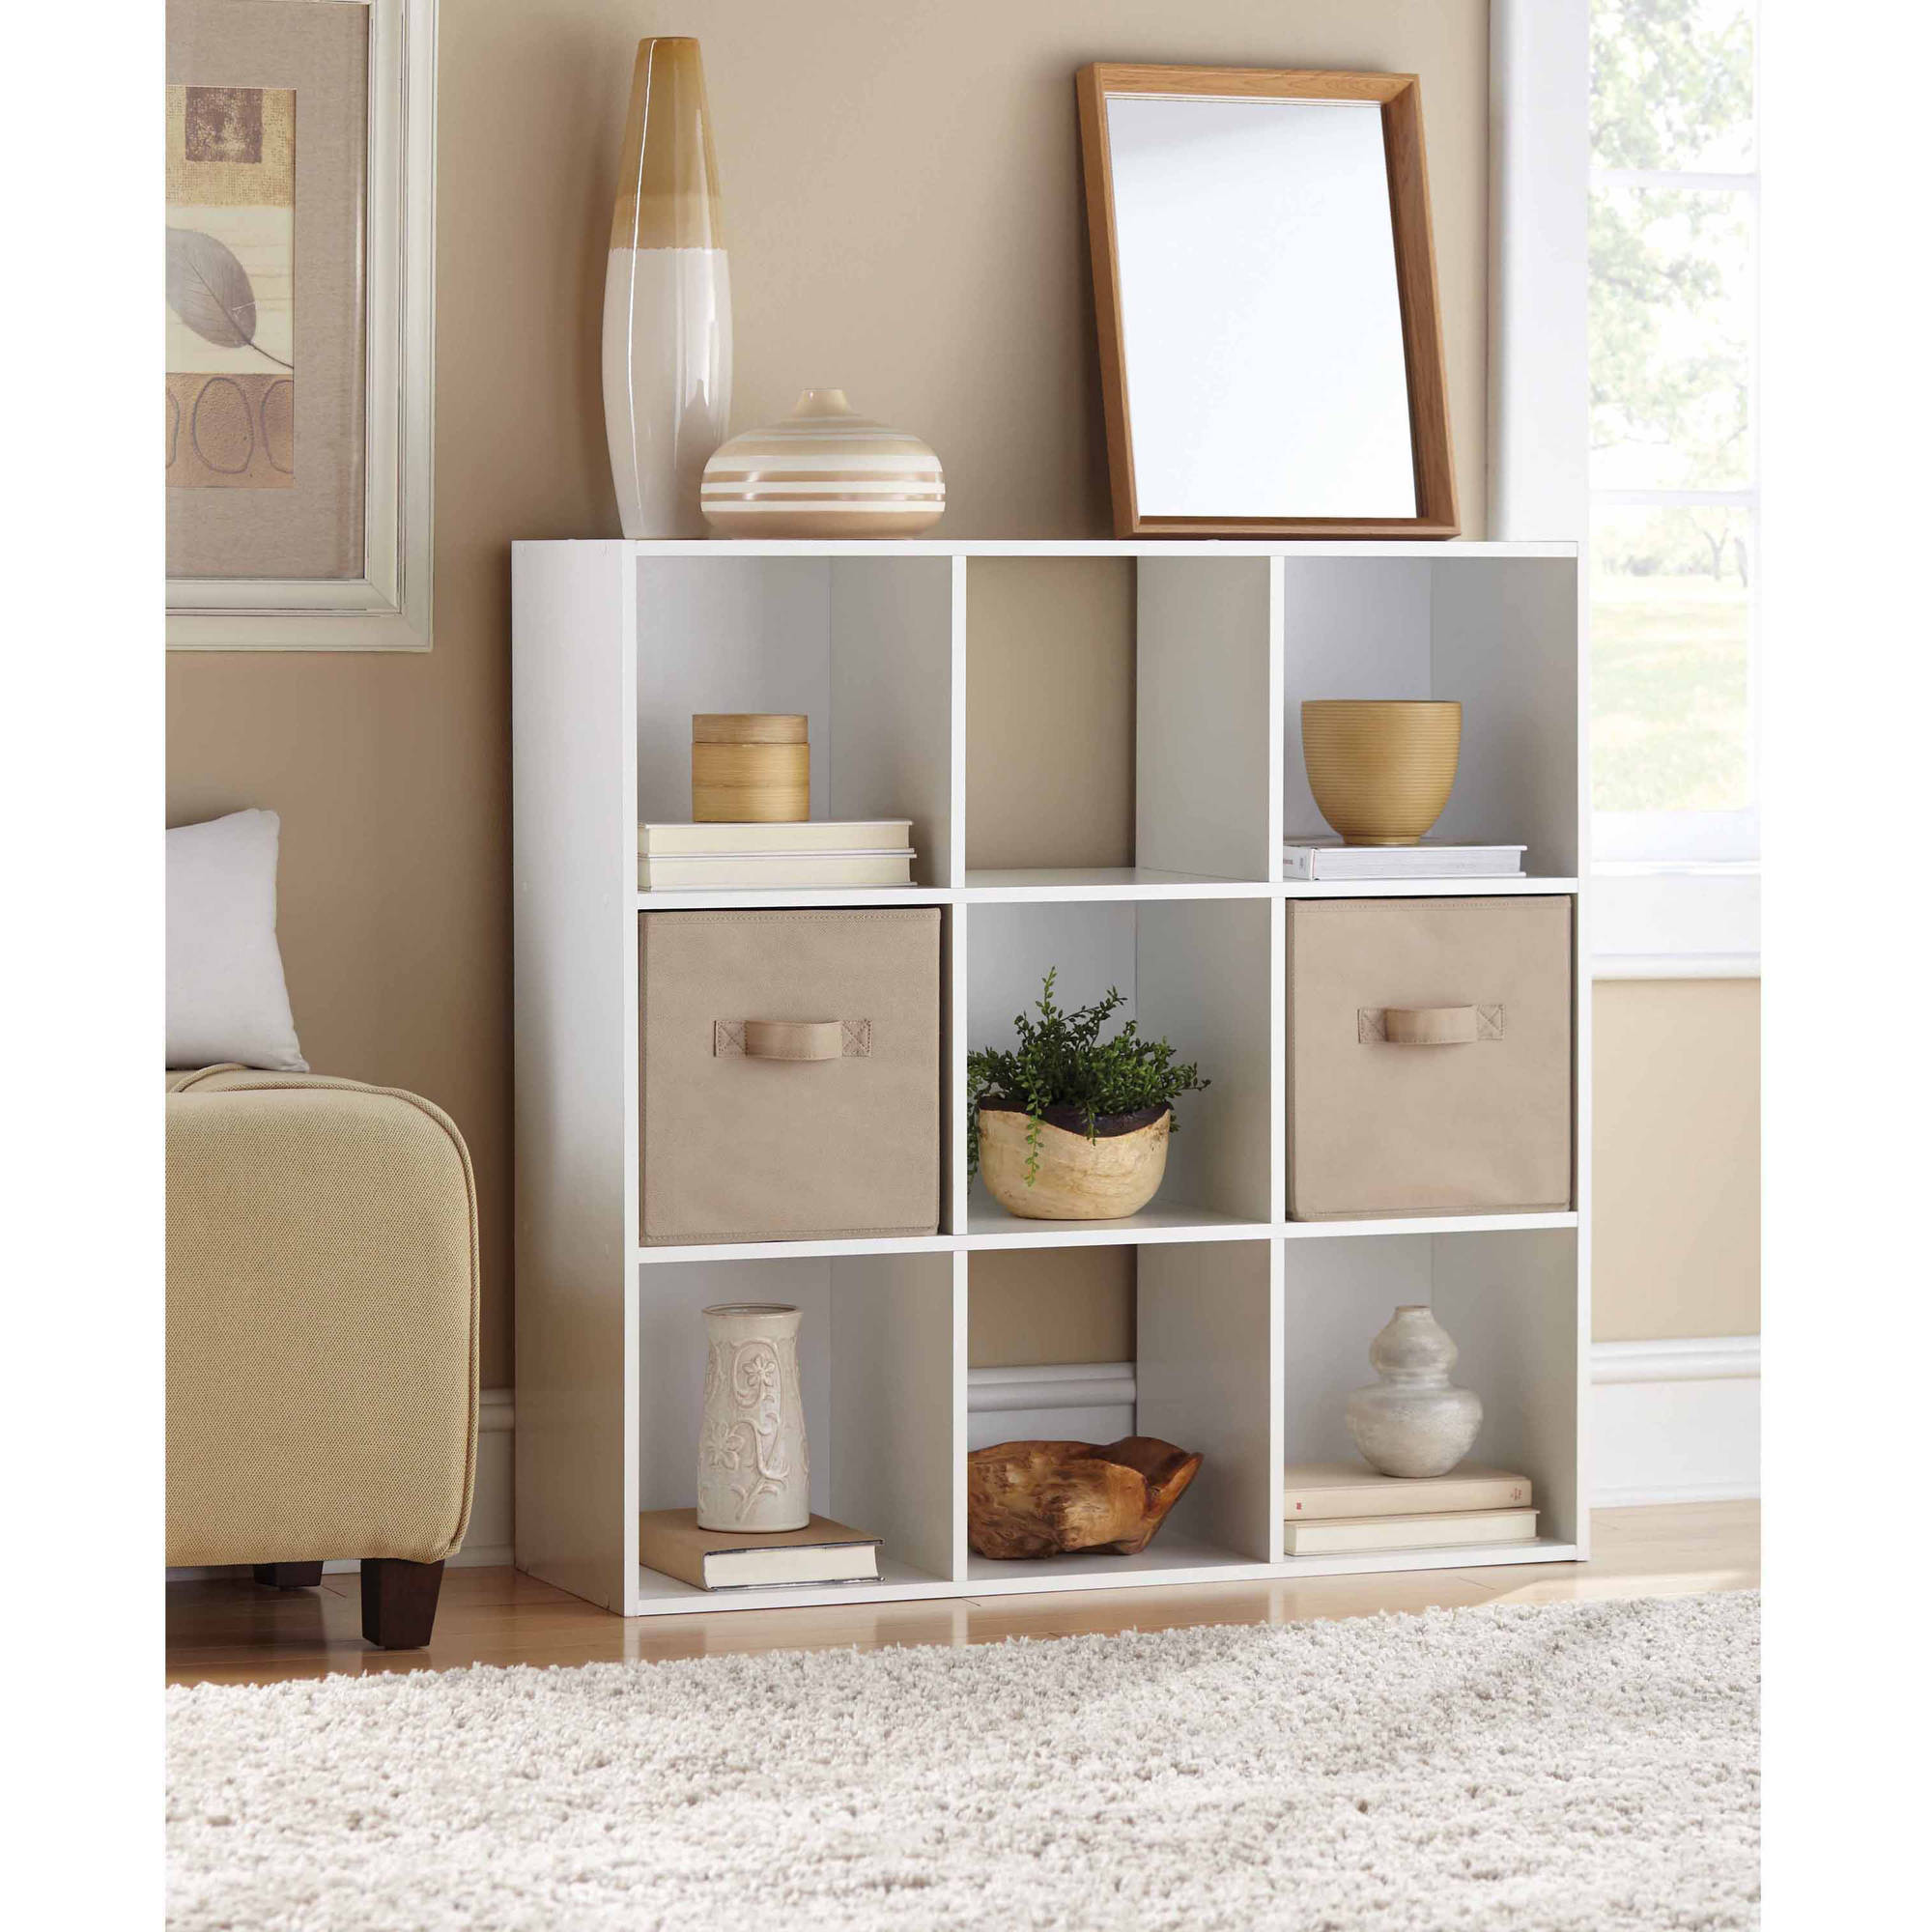 Mainstays 9 Cube Storage Organizer, Multiple Colors